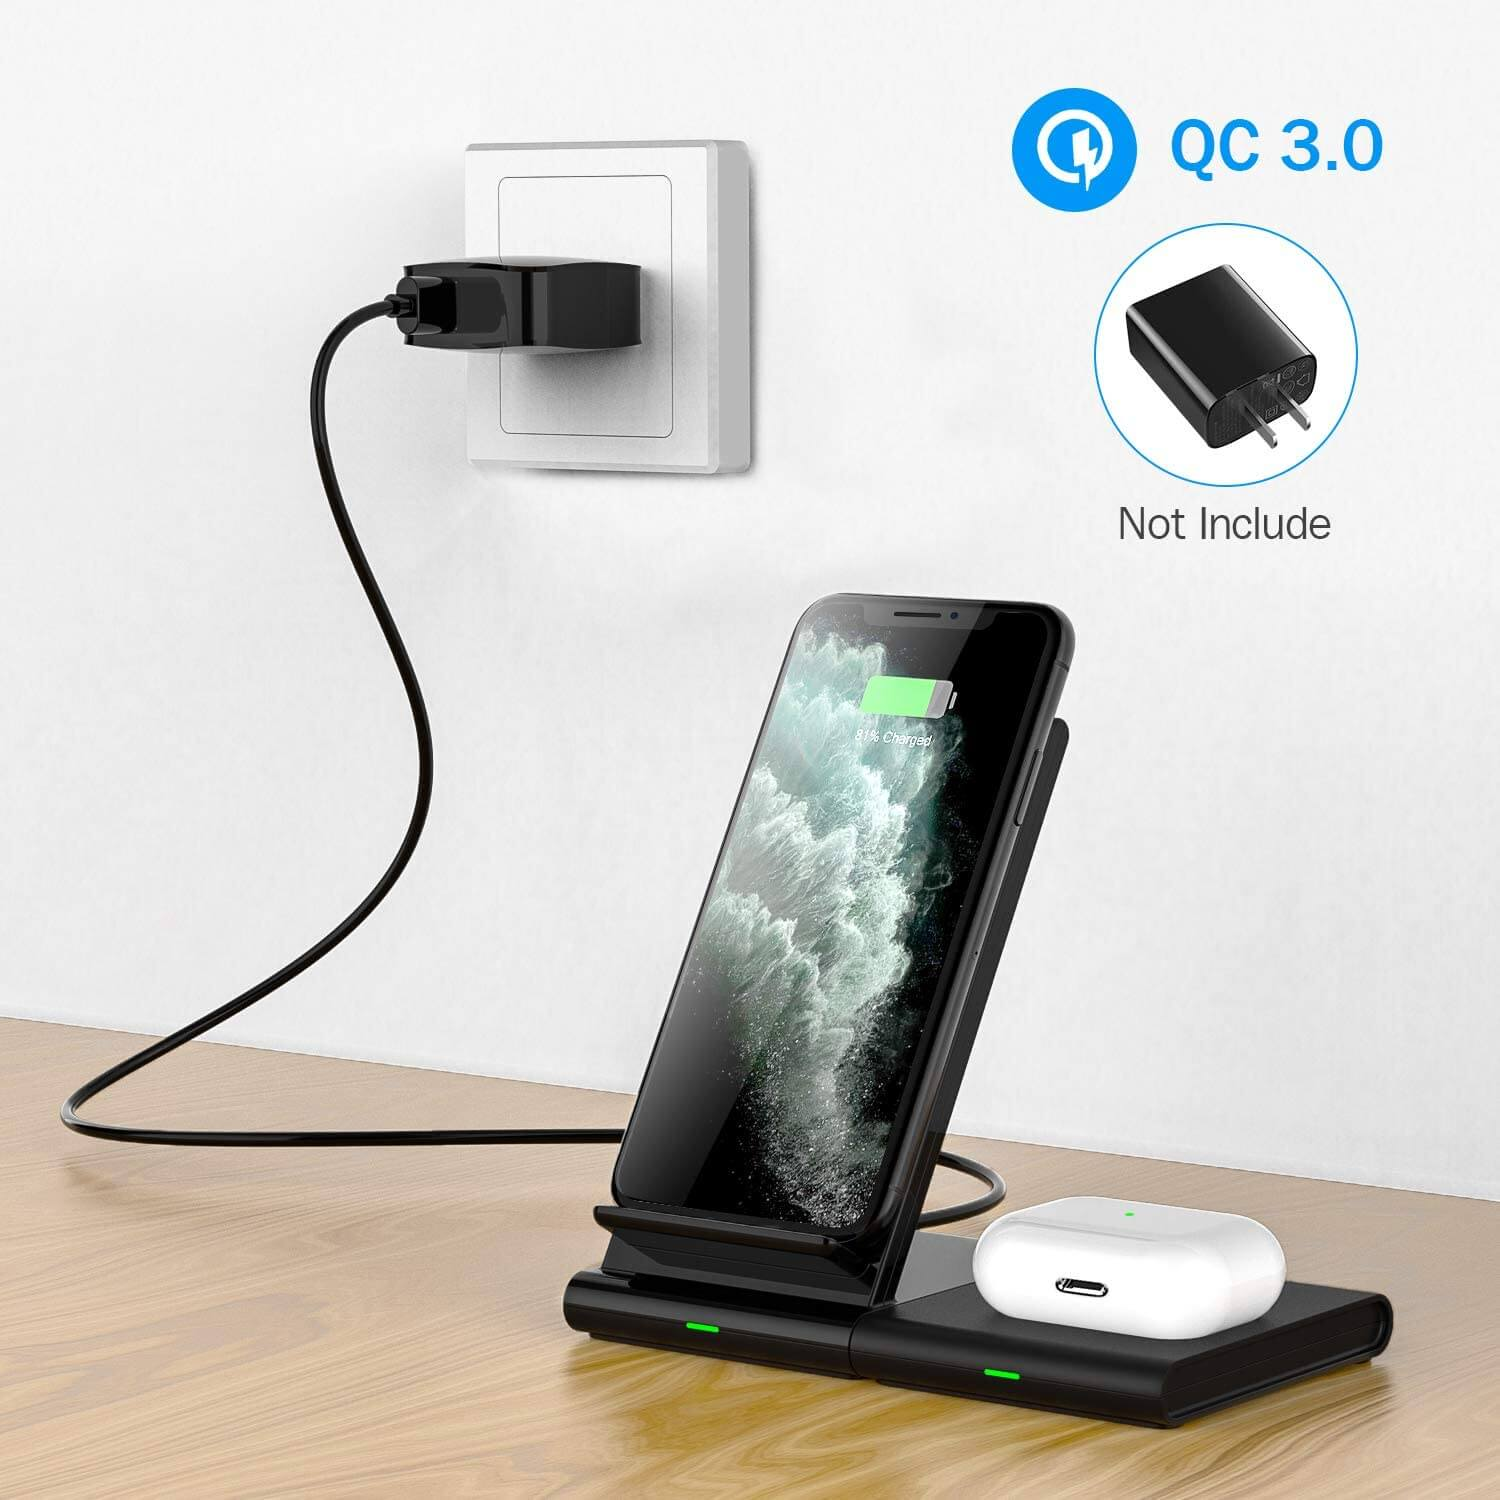 Turbo Wireless Charger stand Iphone 7.5W fast charging F430